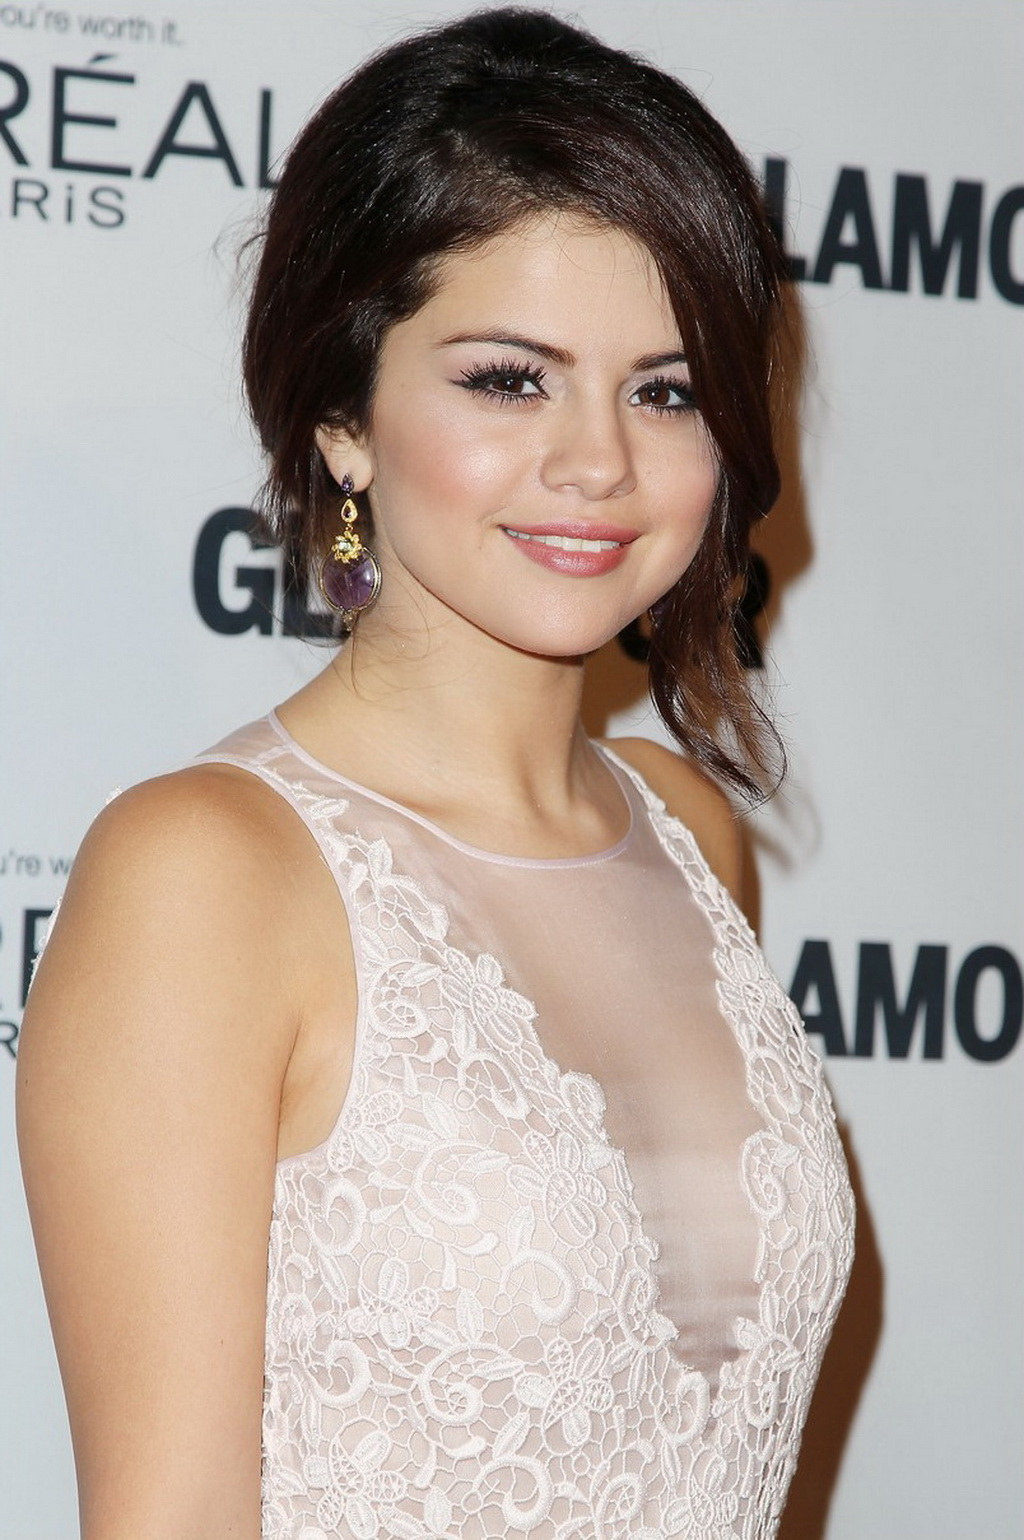 Selena Gomez braless showing huge see-through cleavage in white outfit ...